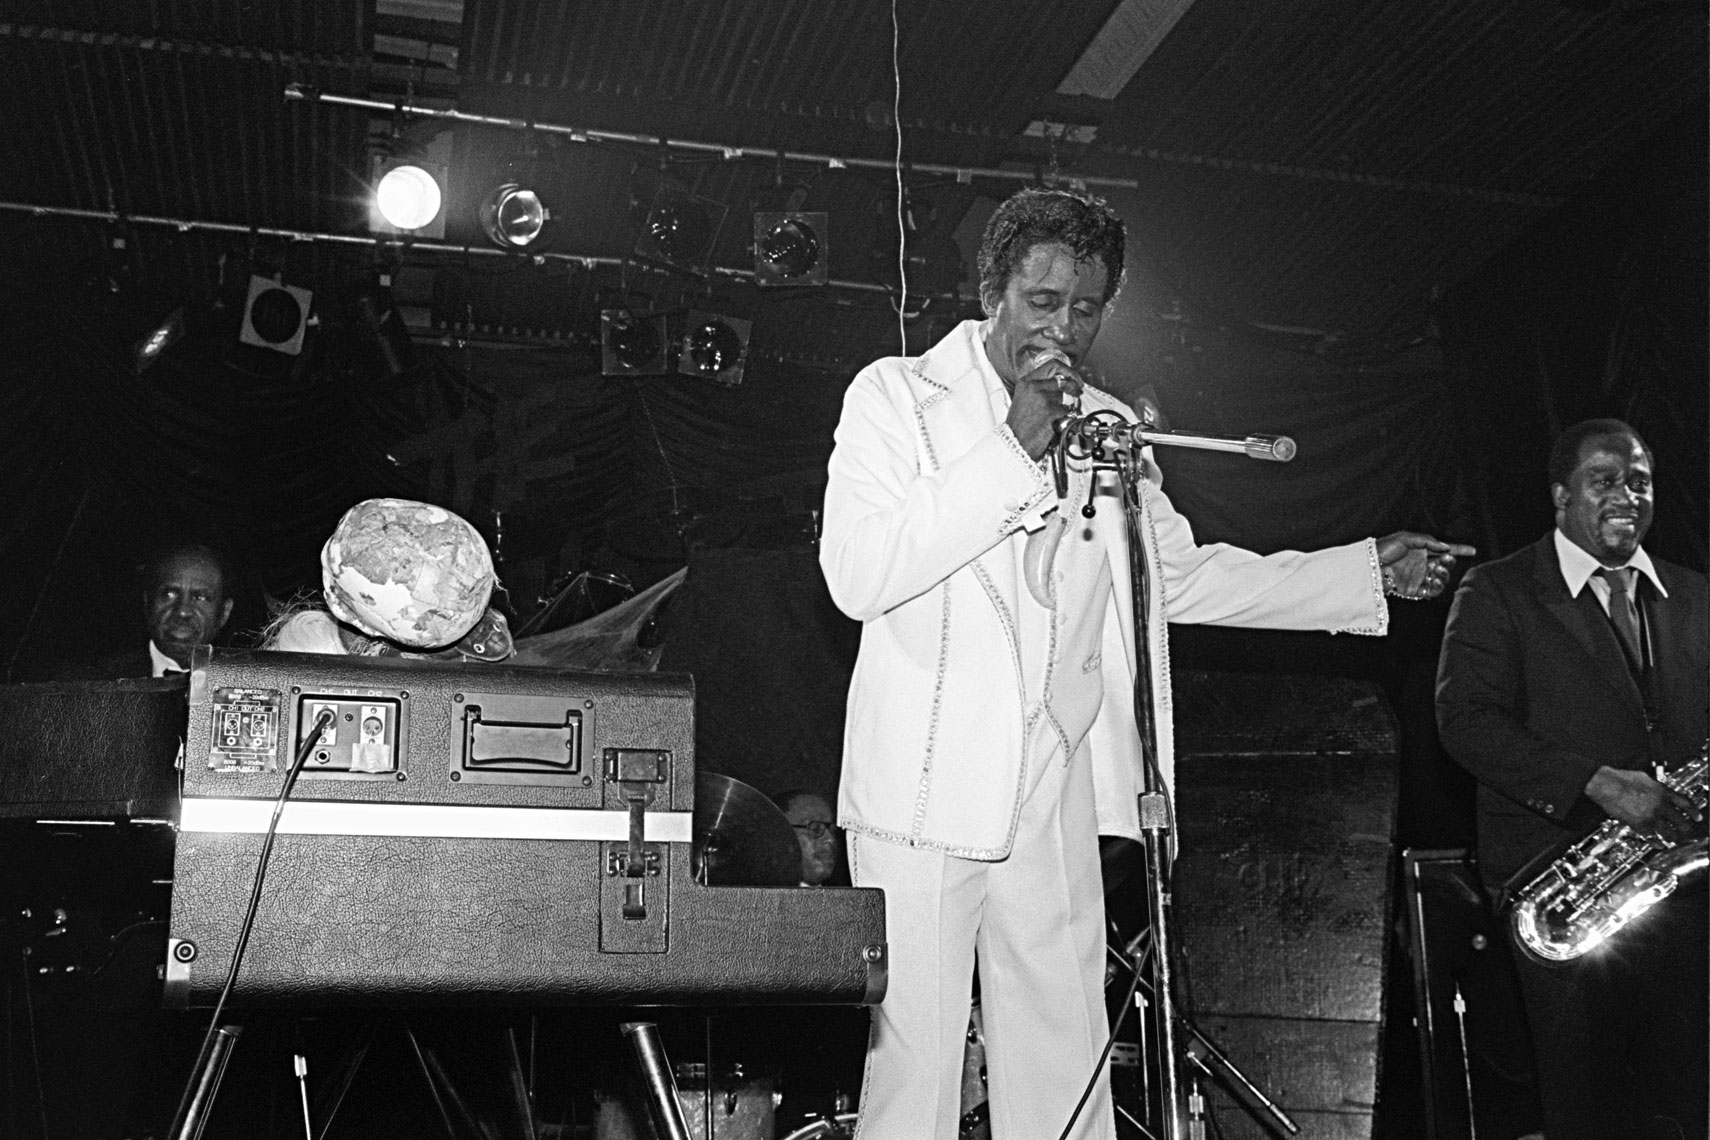 069_076_Screamin-Jay-Hawkins_Irving-Plaza